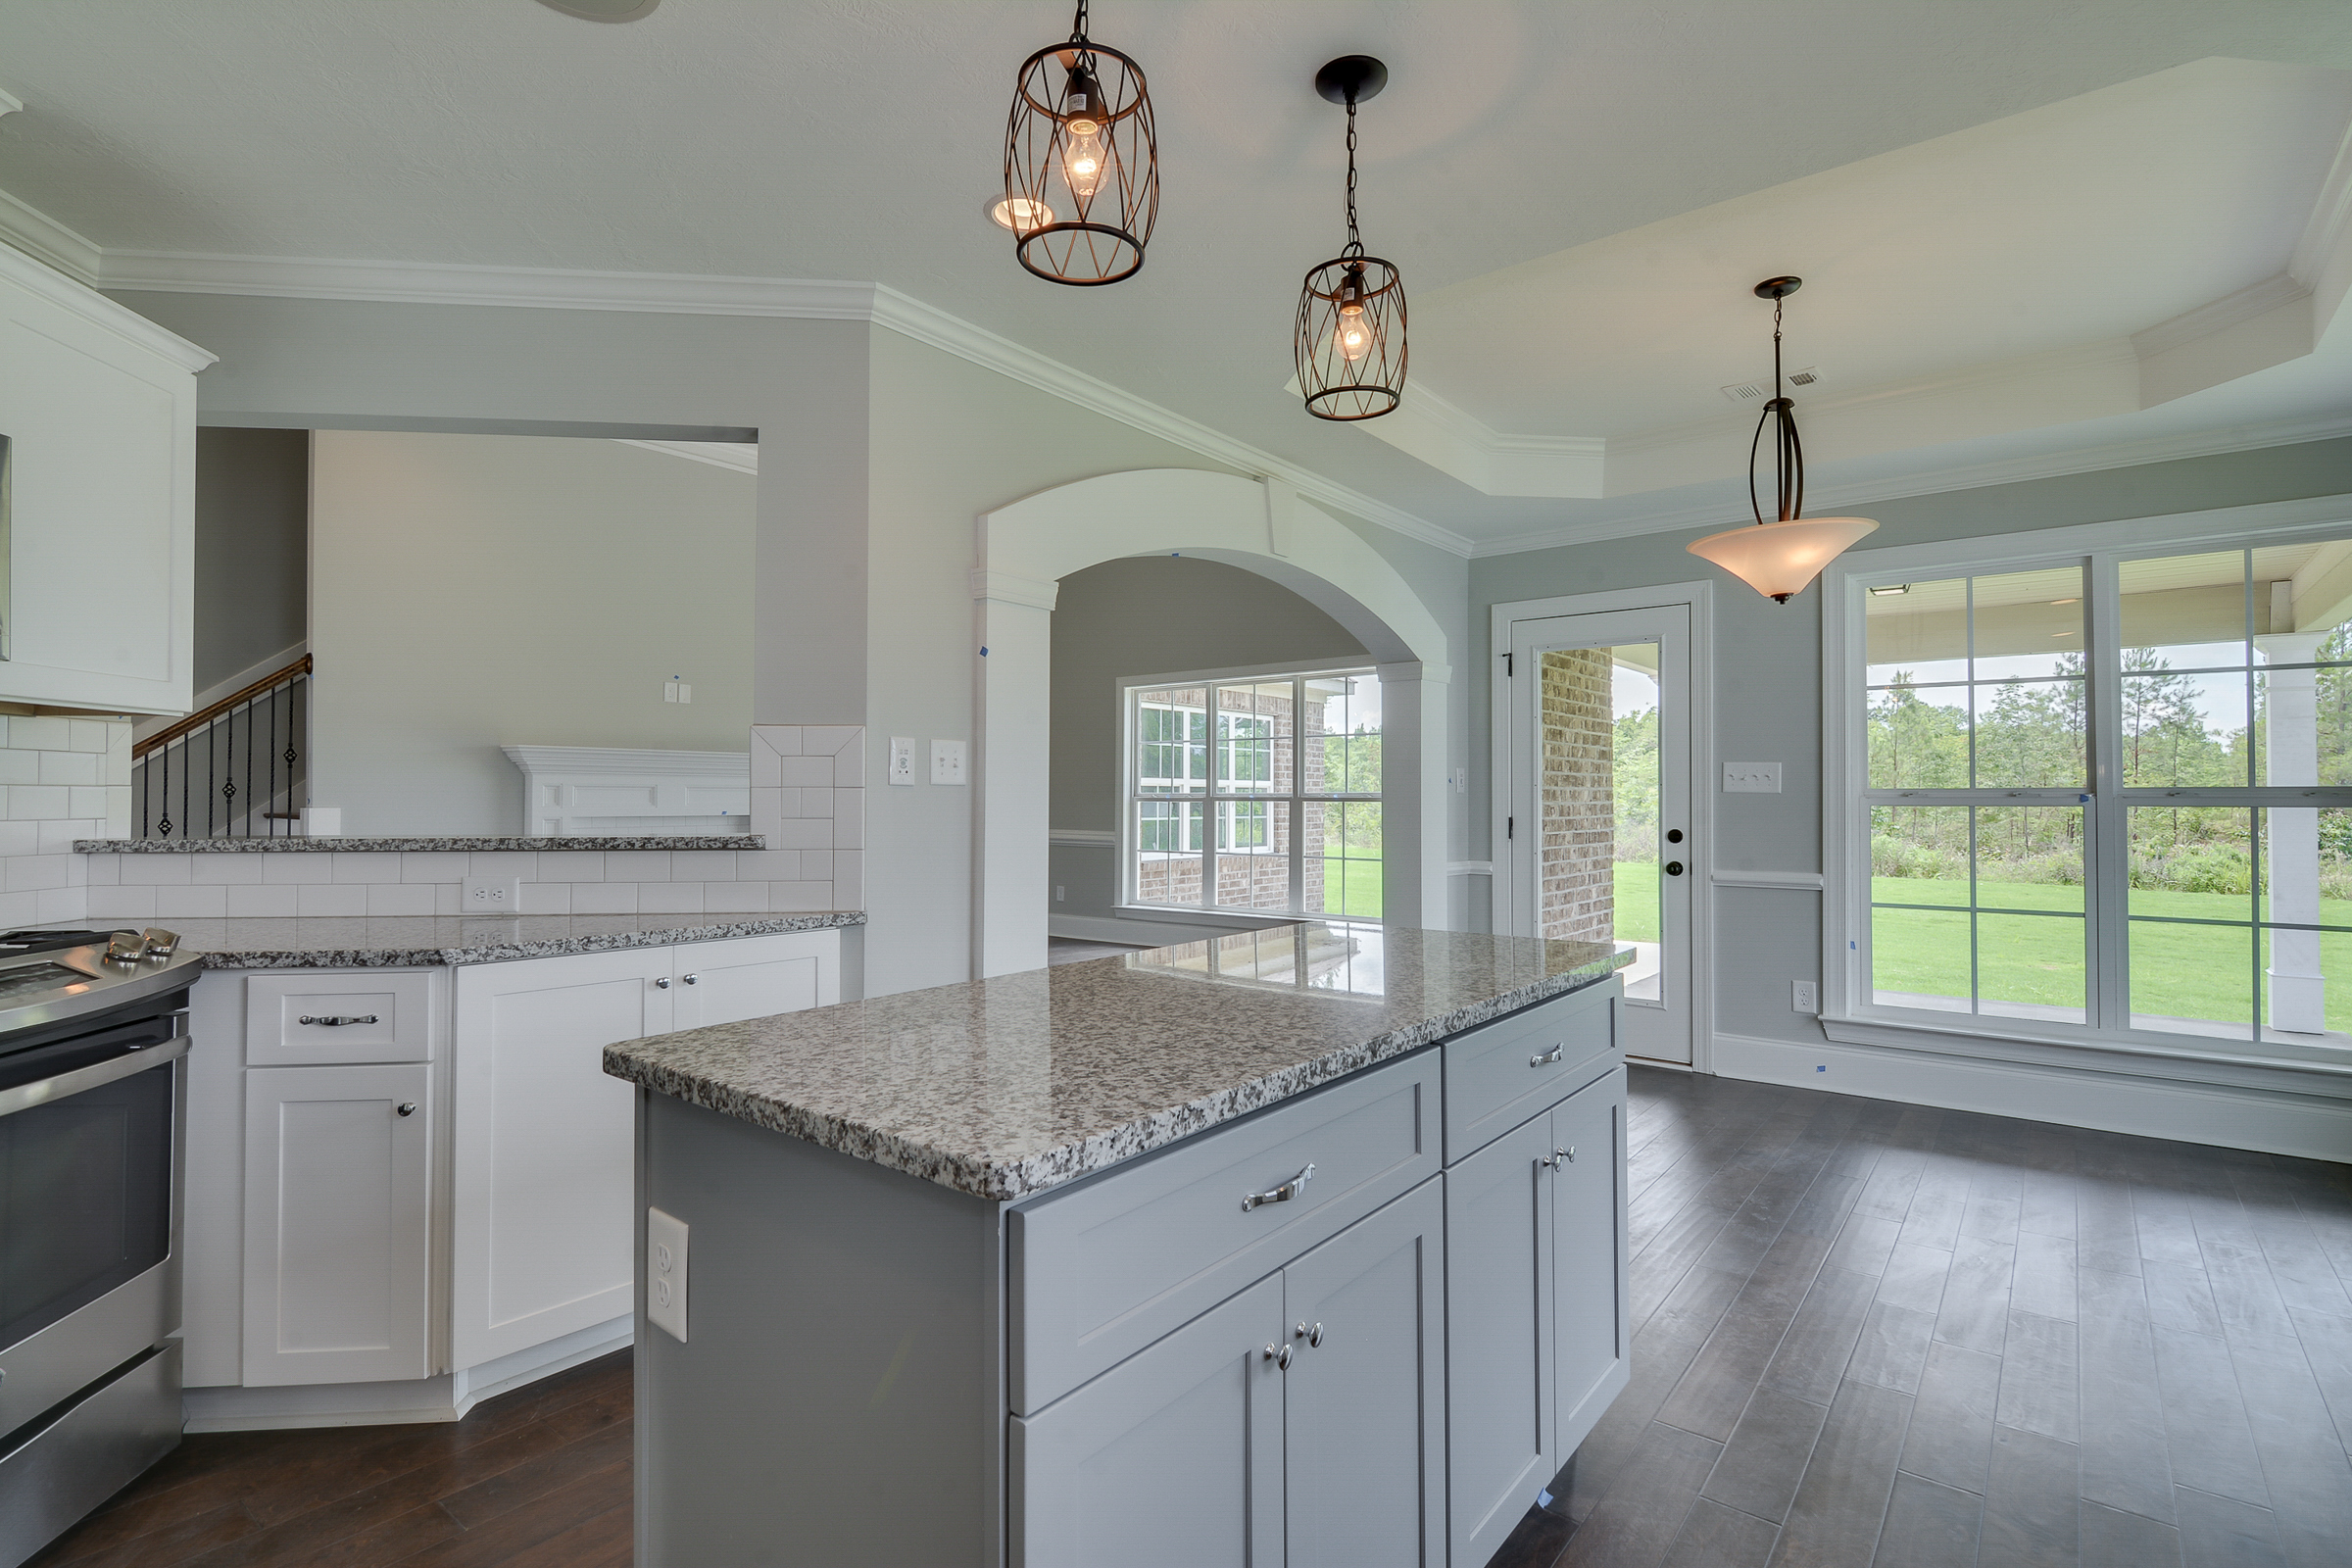 An image of a kitchen with an island and a view in a kelarie home.